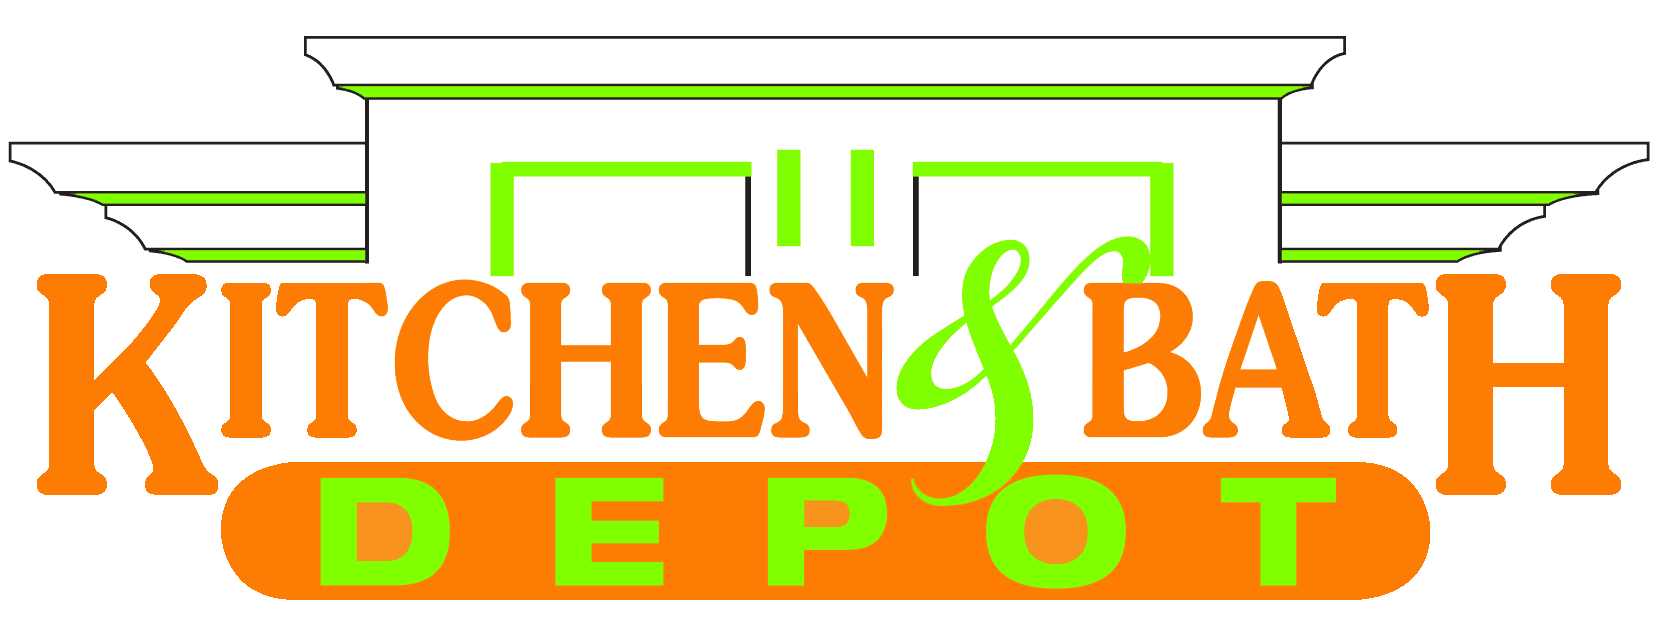 Kitchen & Bath Depot - logo